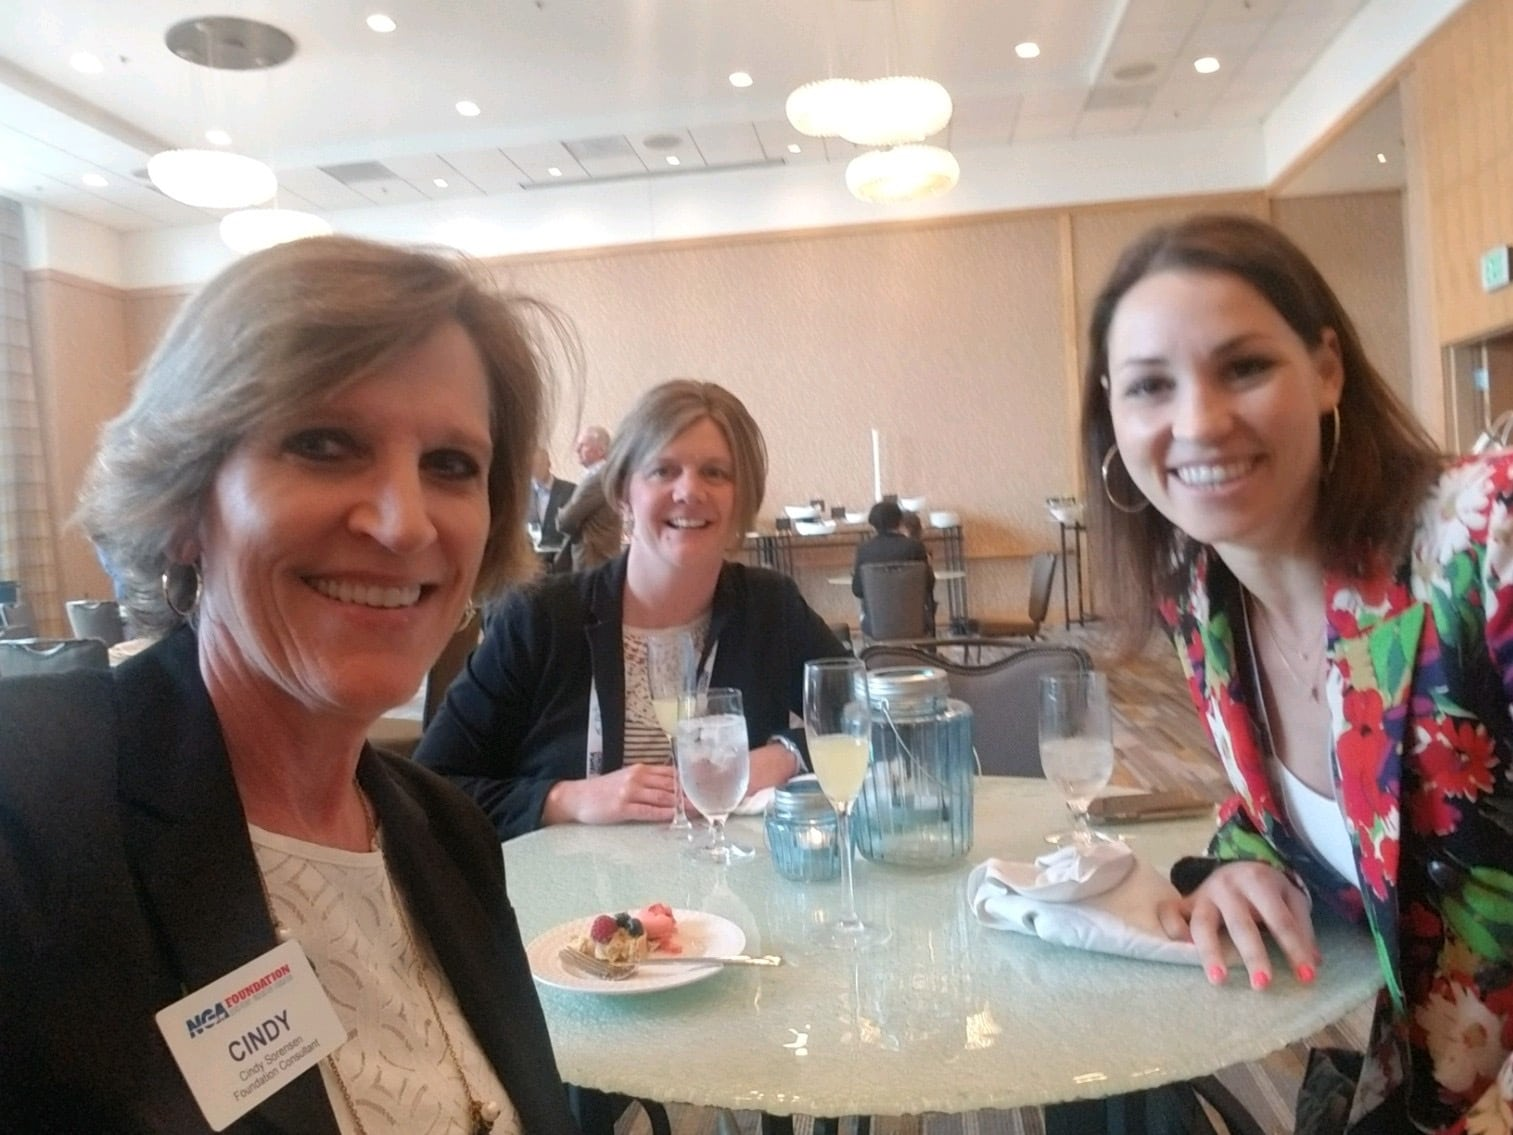 Cindy with Amy Niemetscheck from Certo and Emily Coborn from Coborns, Inc.